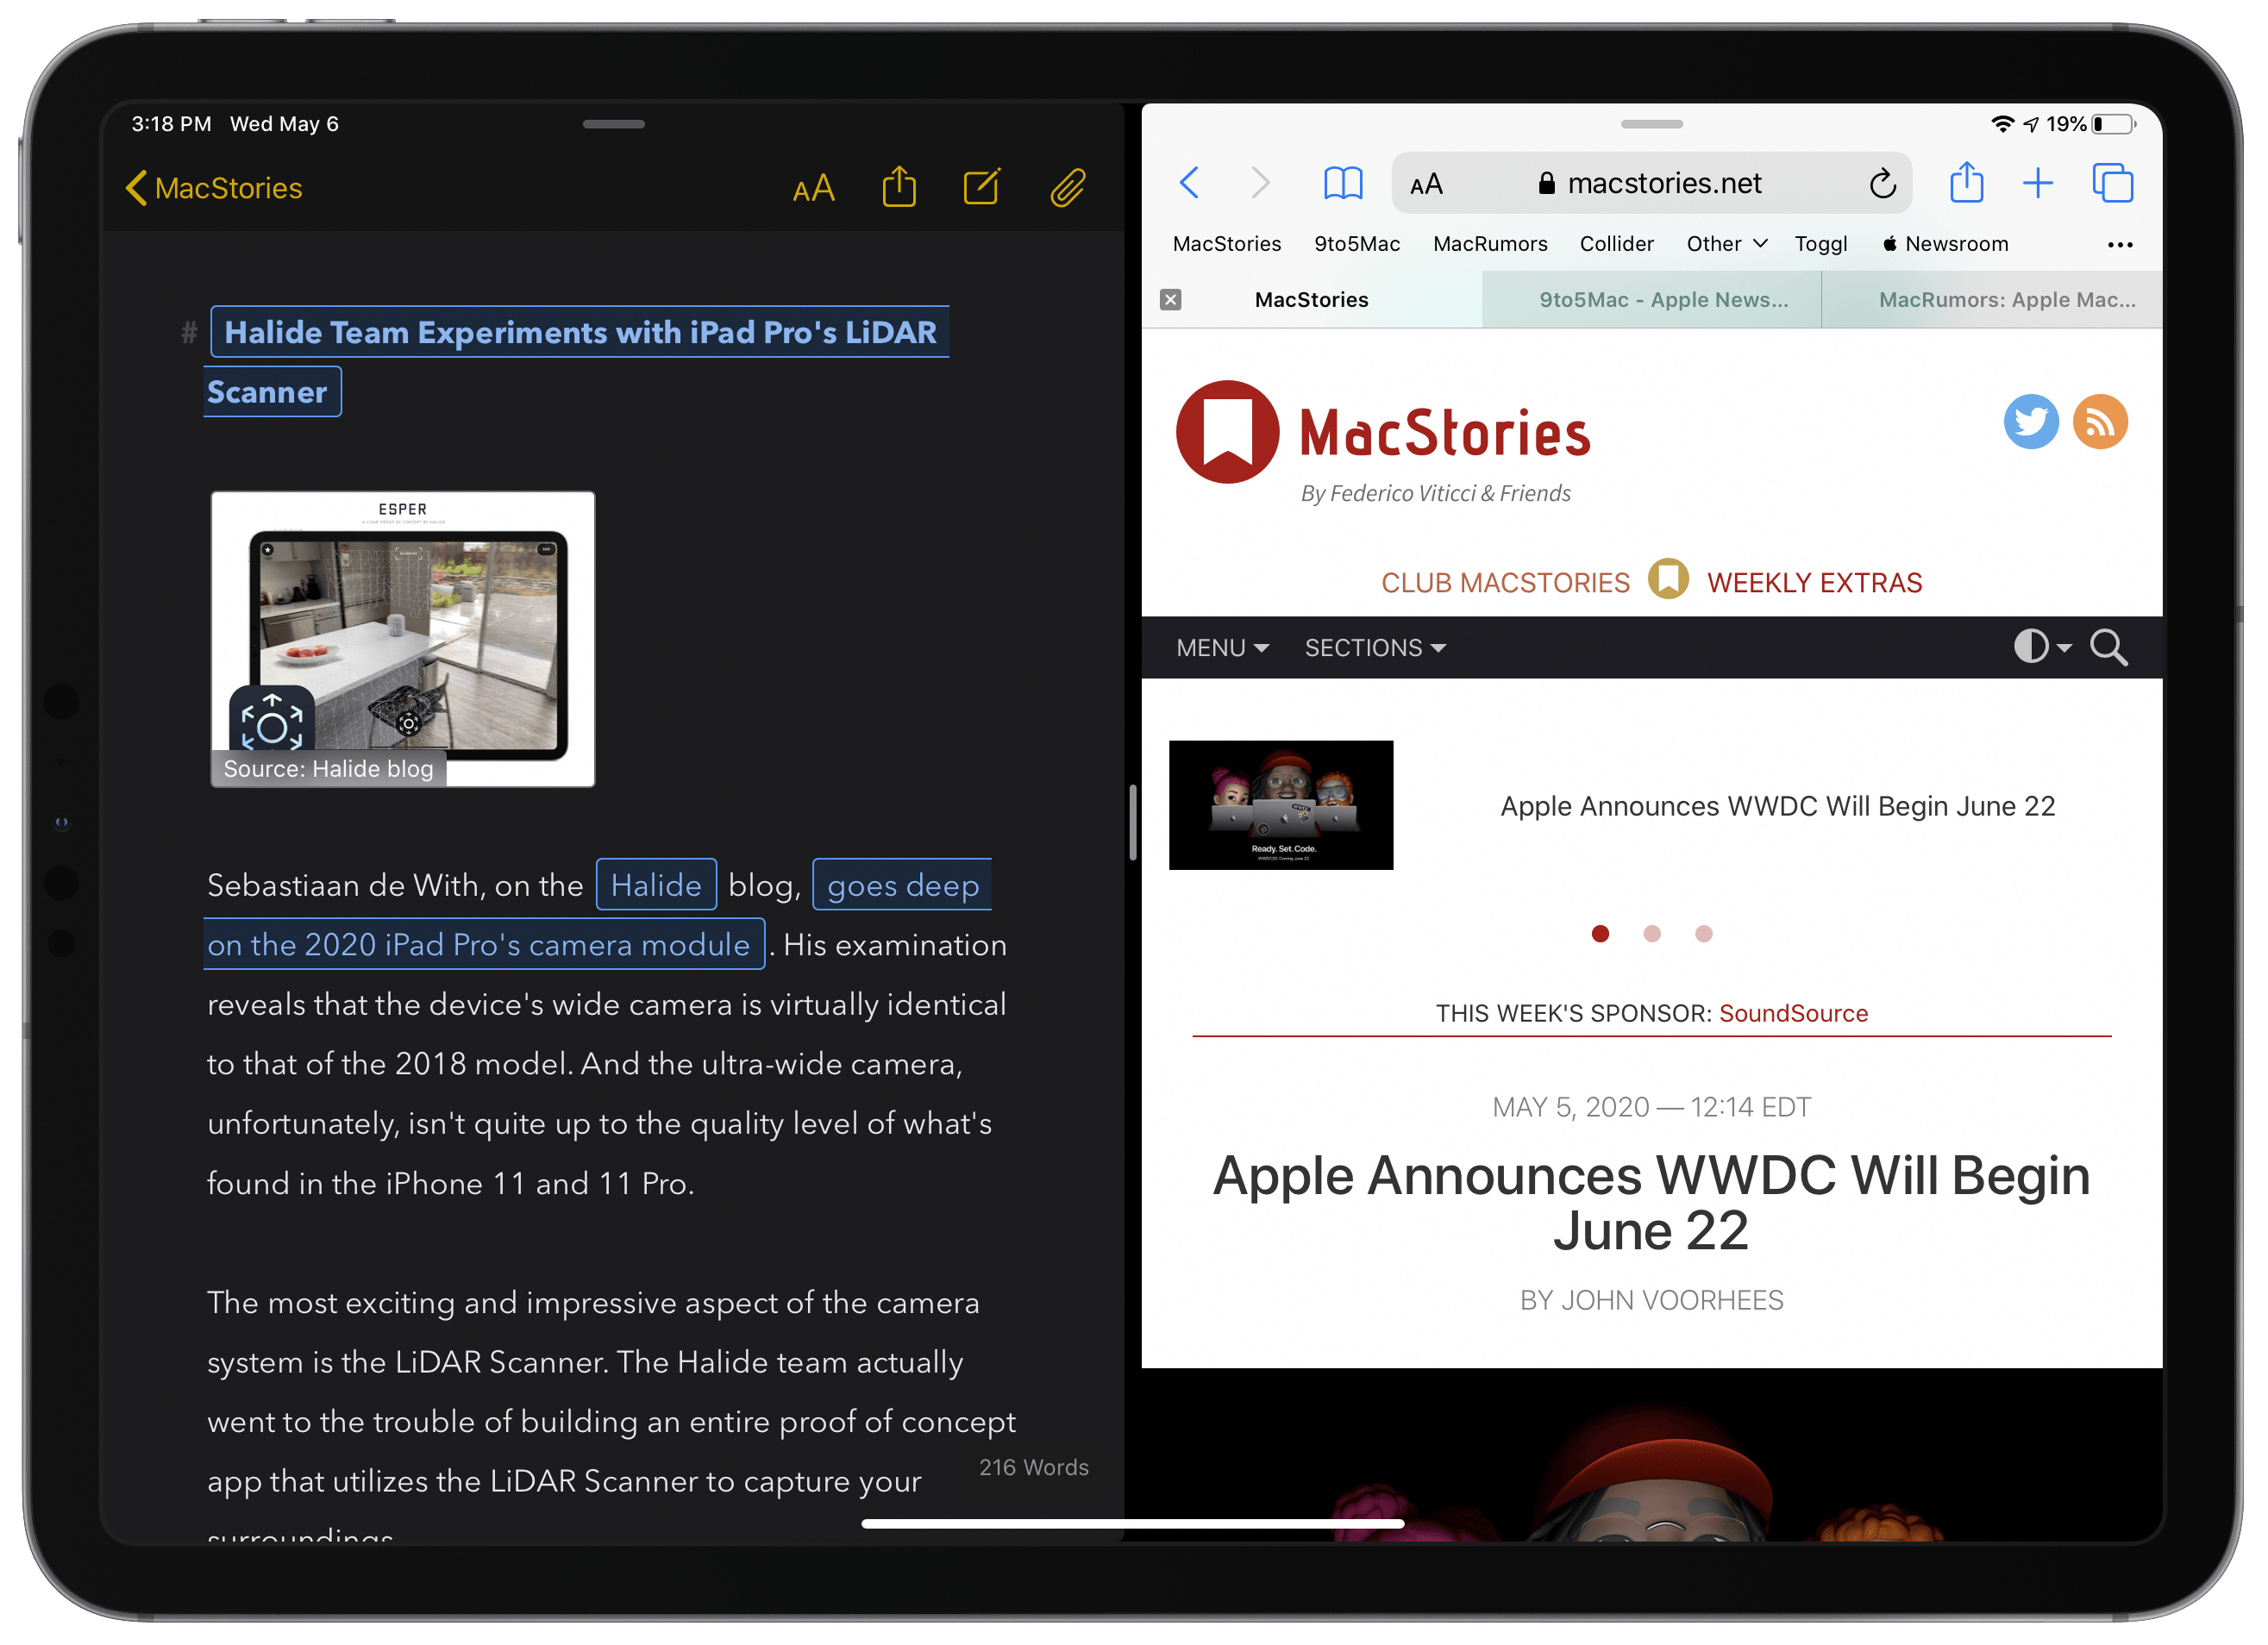 Safari in Split View retains tabs, despite using a compact layout.